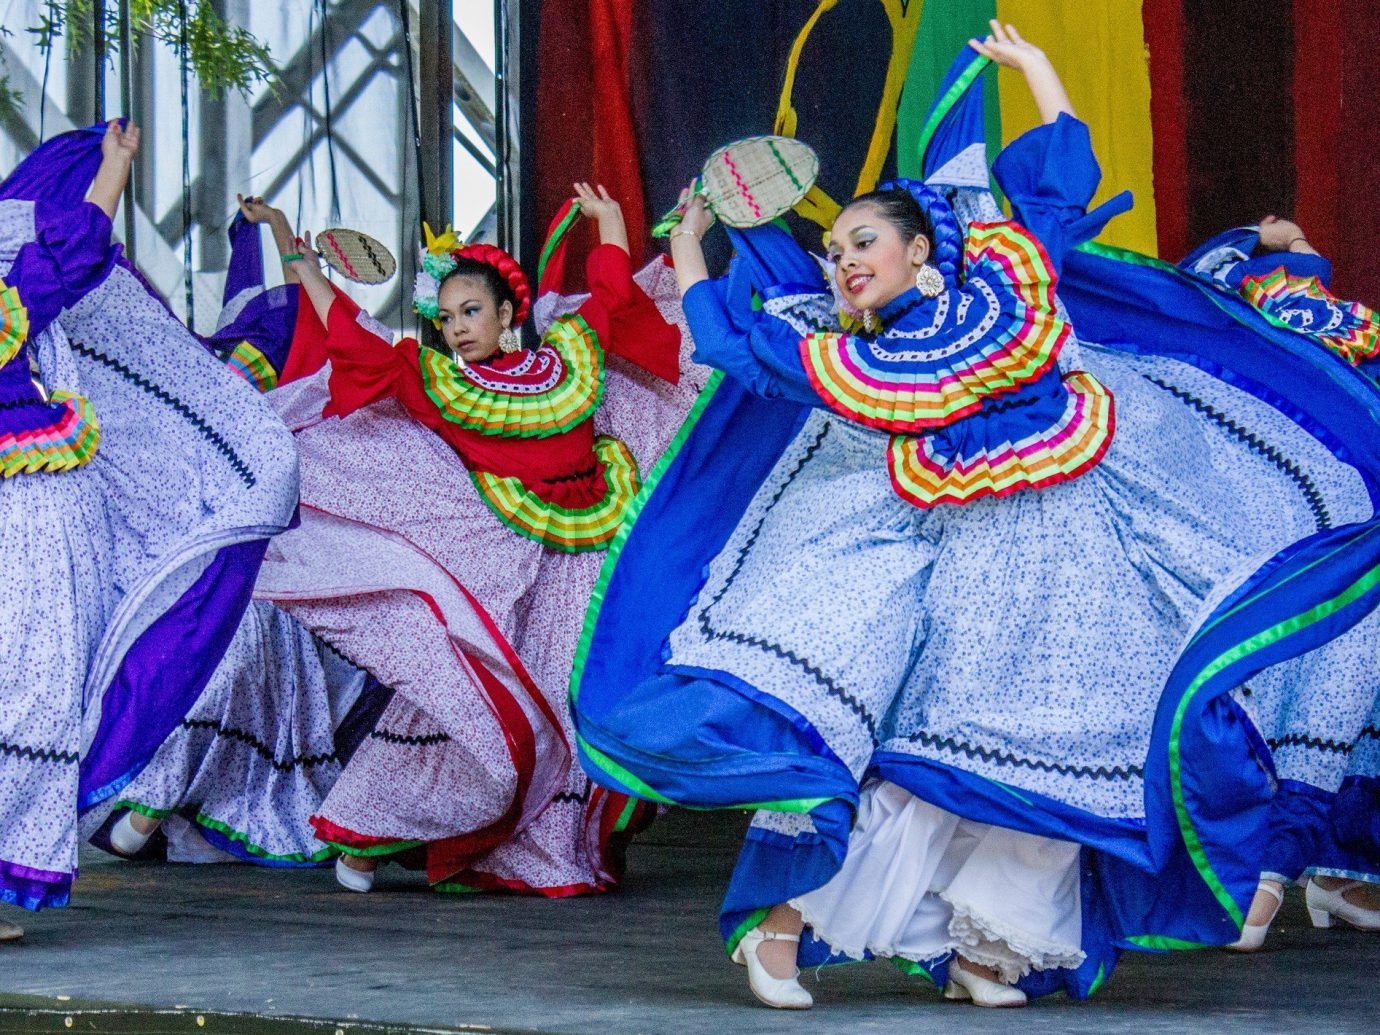 Trip Ideas dance performing arts performance art carnival event folk dance festival sports musical theatre colorful